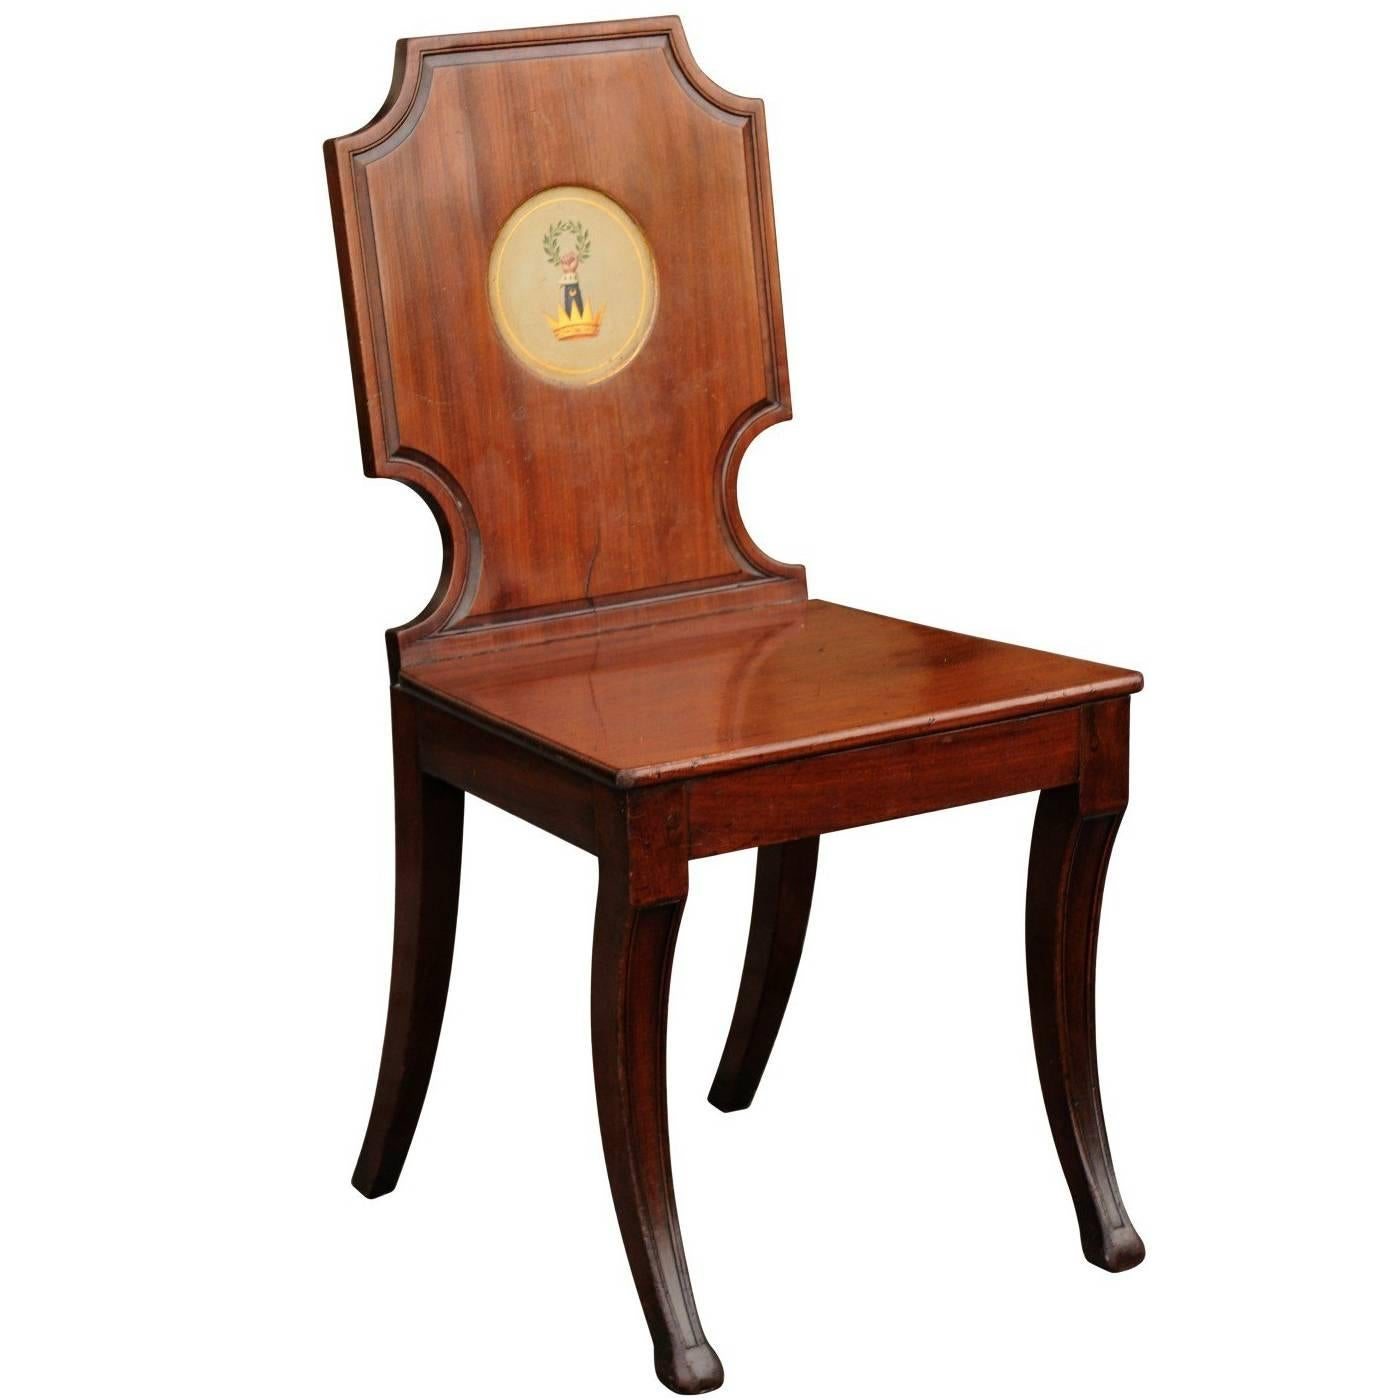 English 1840s Wooden Hall Chair With Cartouche Shaped Back And Painted  Crest For Sale